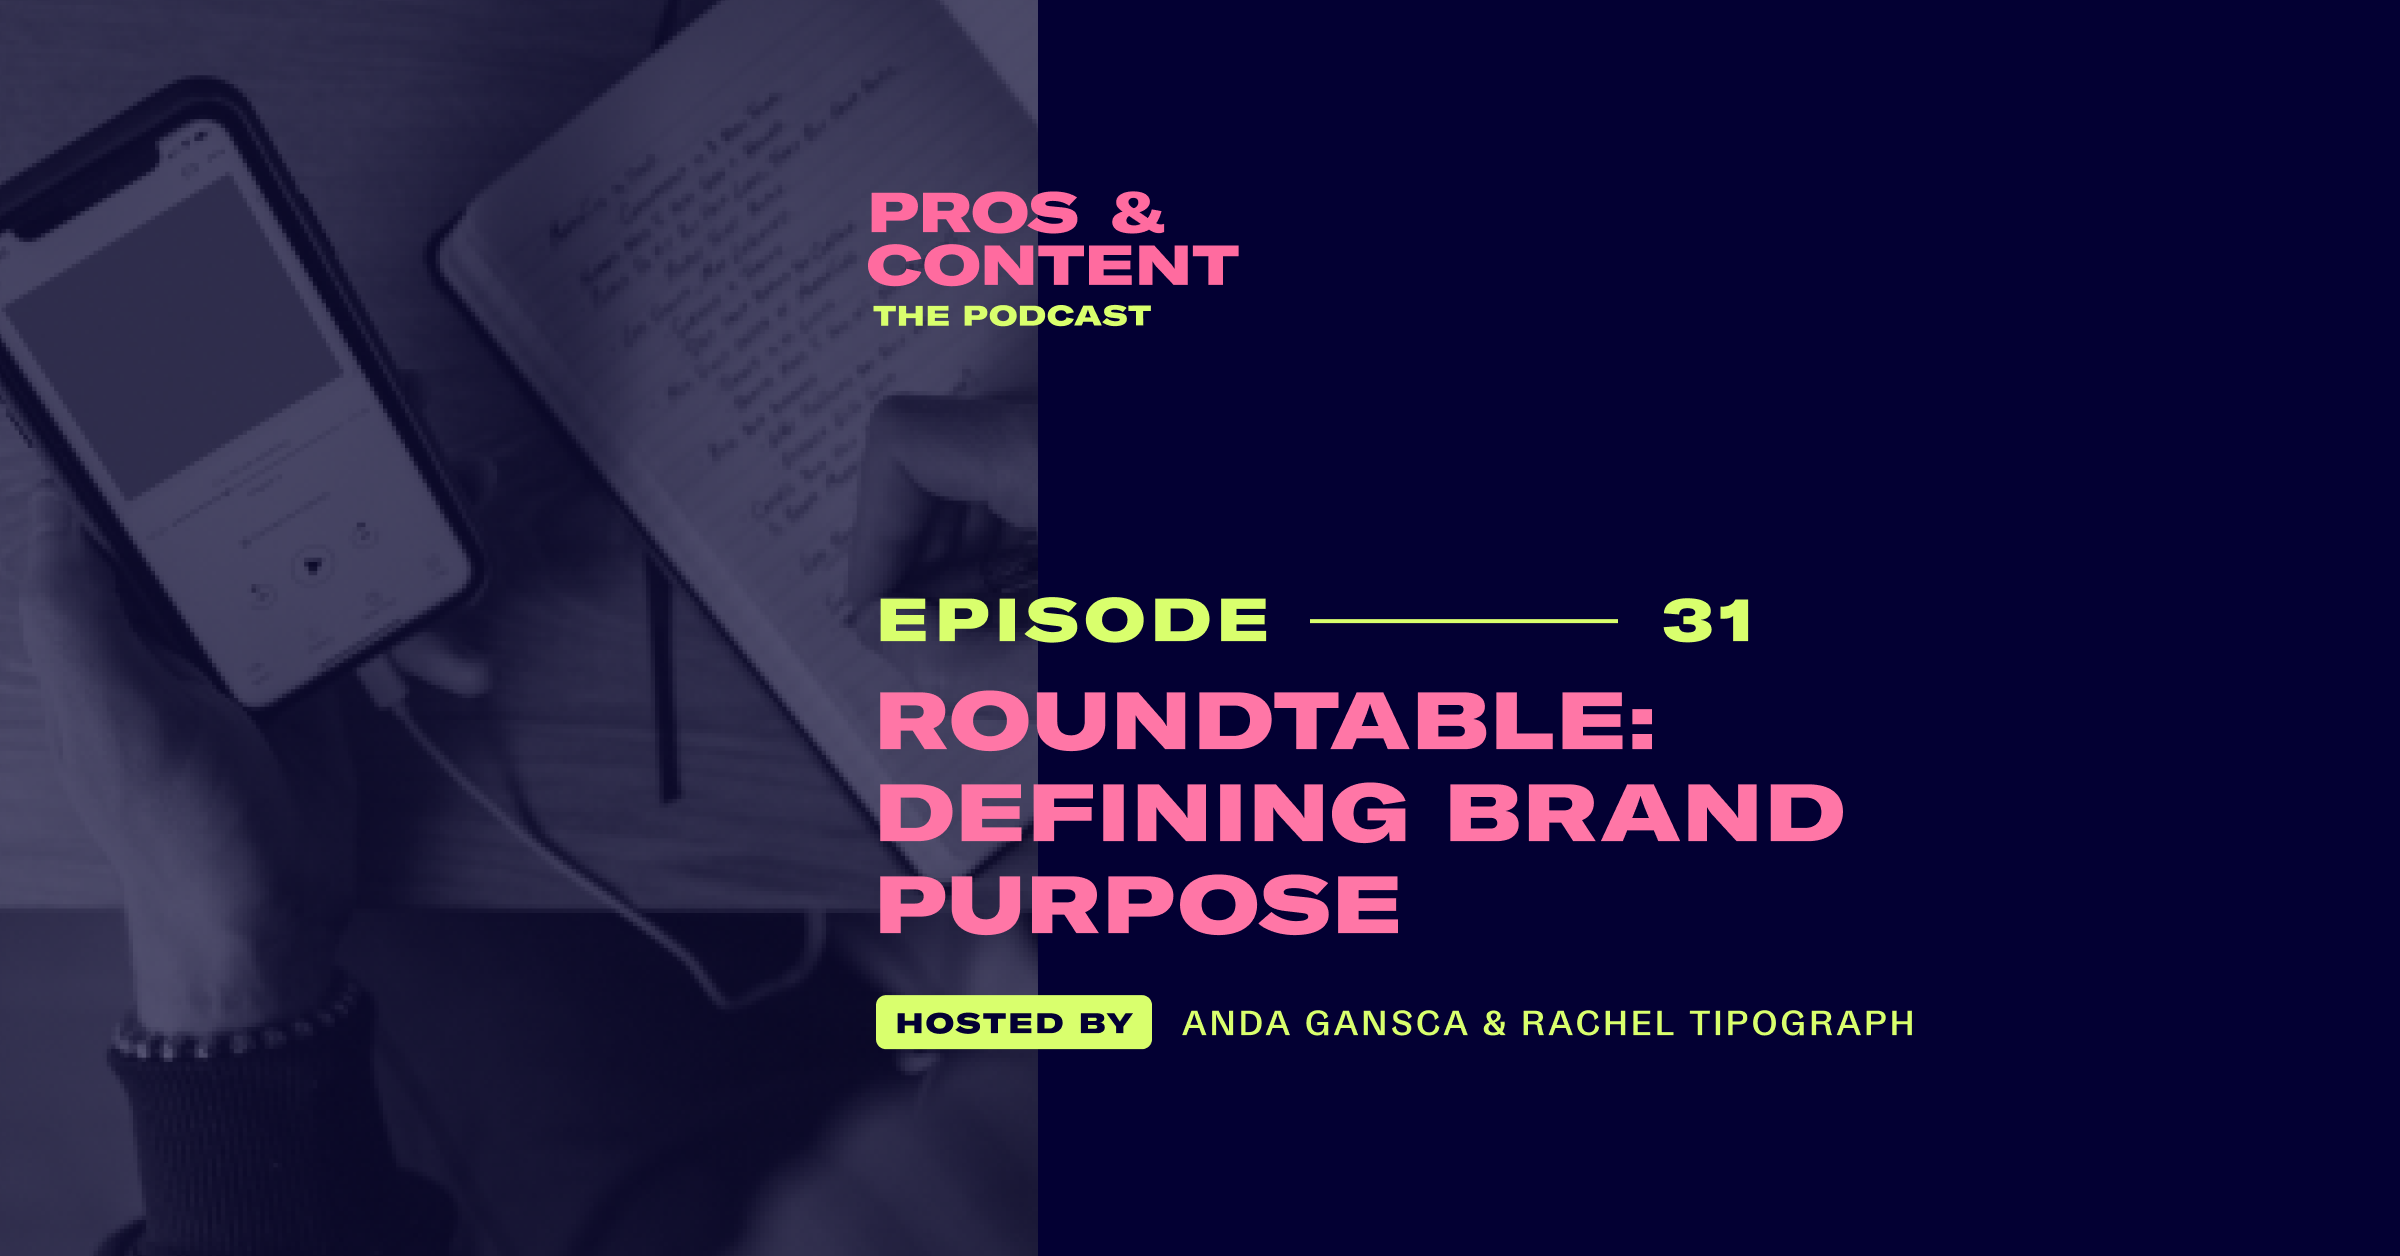 Pros & Content Podcast: Roundtable - Defining Brand Purpose